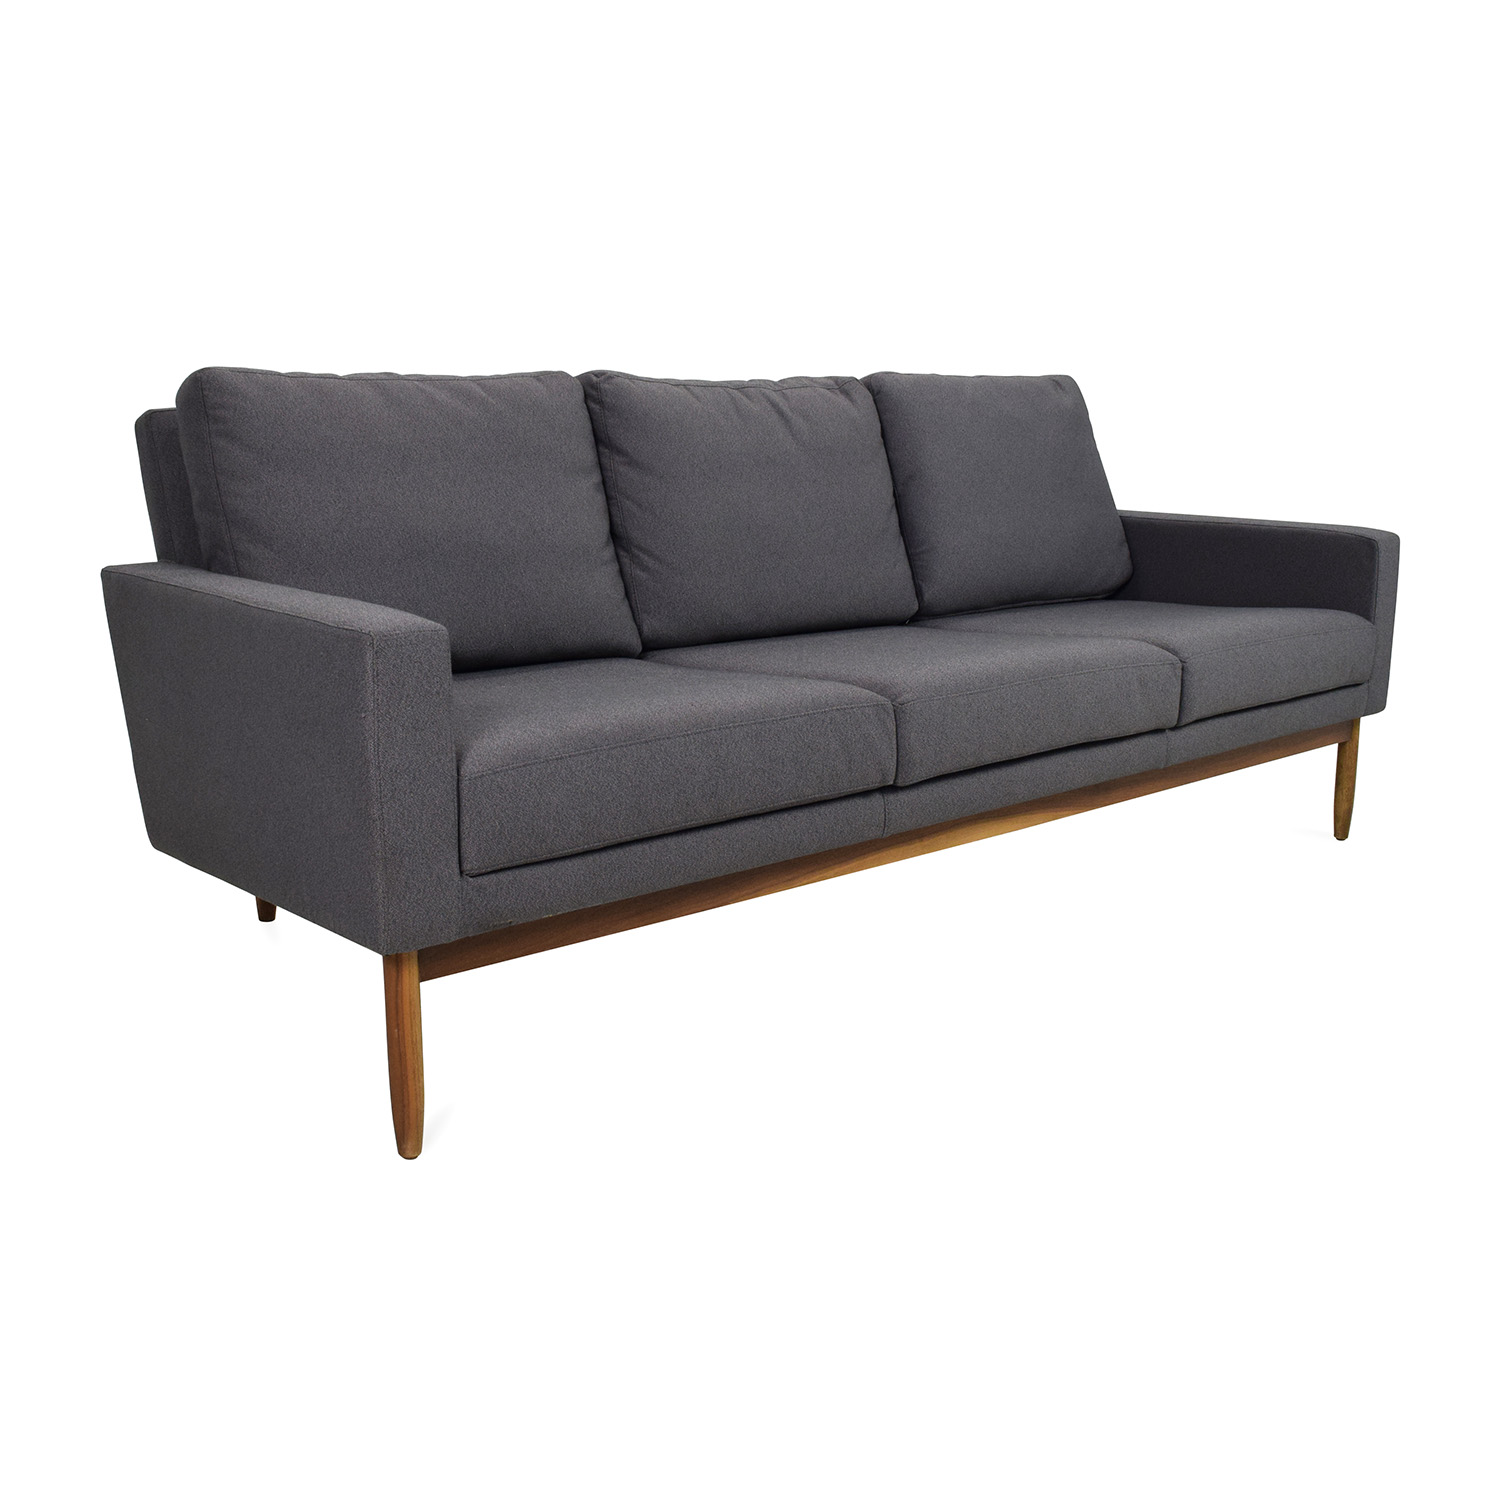 Chairs design within reach -  Design Within Reach Design Within Reach Raleigh Sofa Sofas